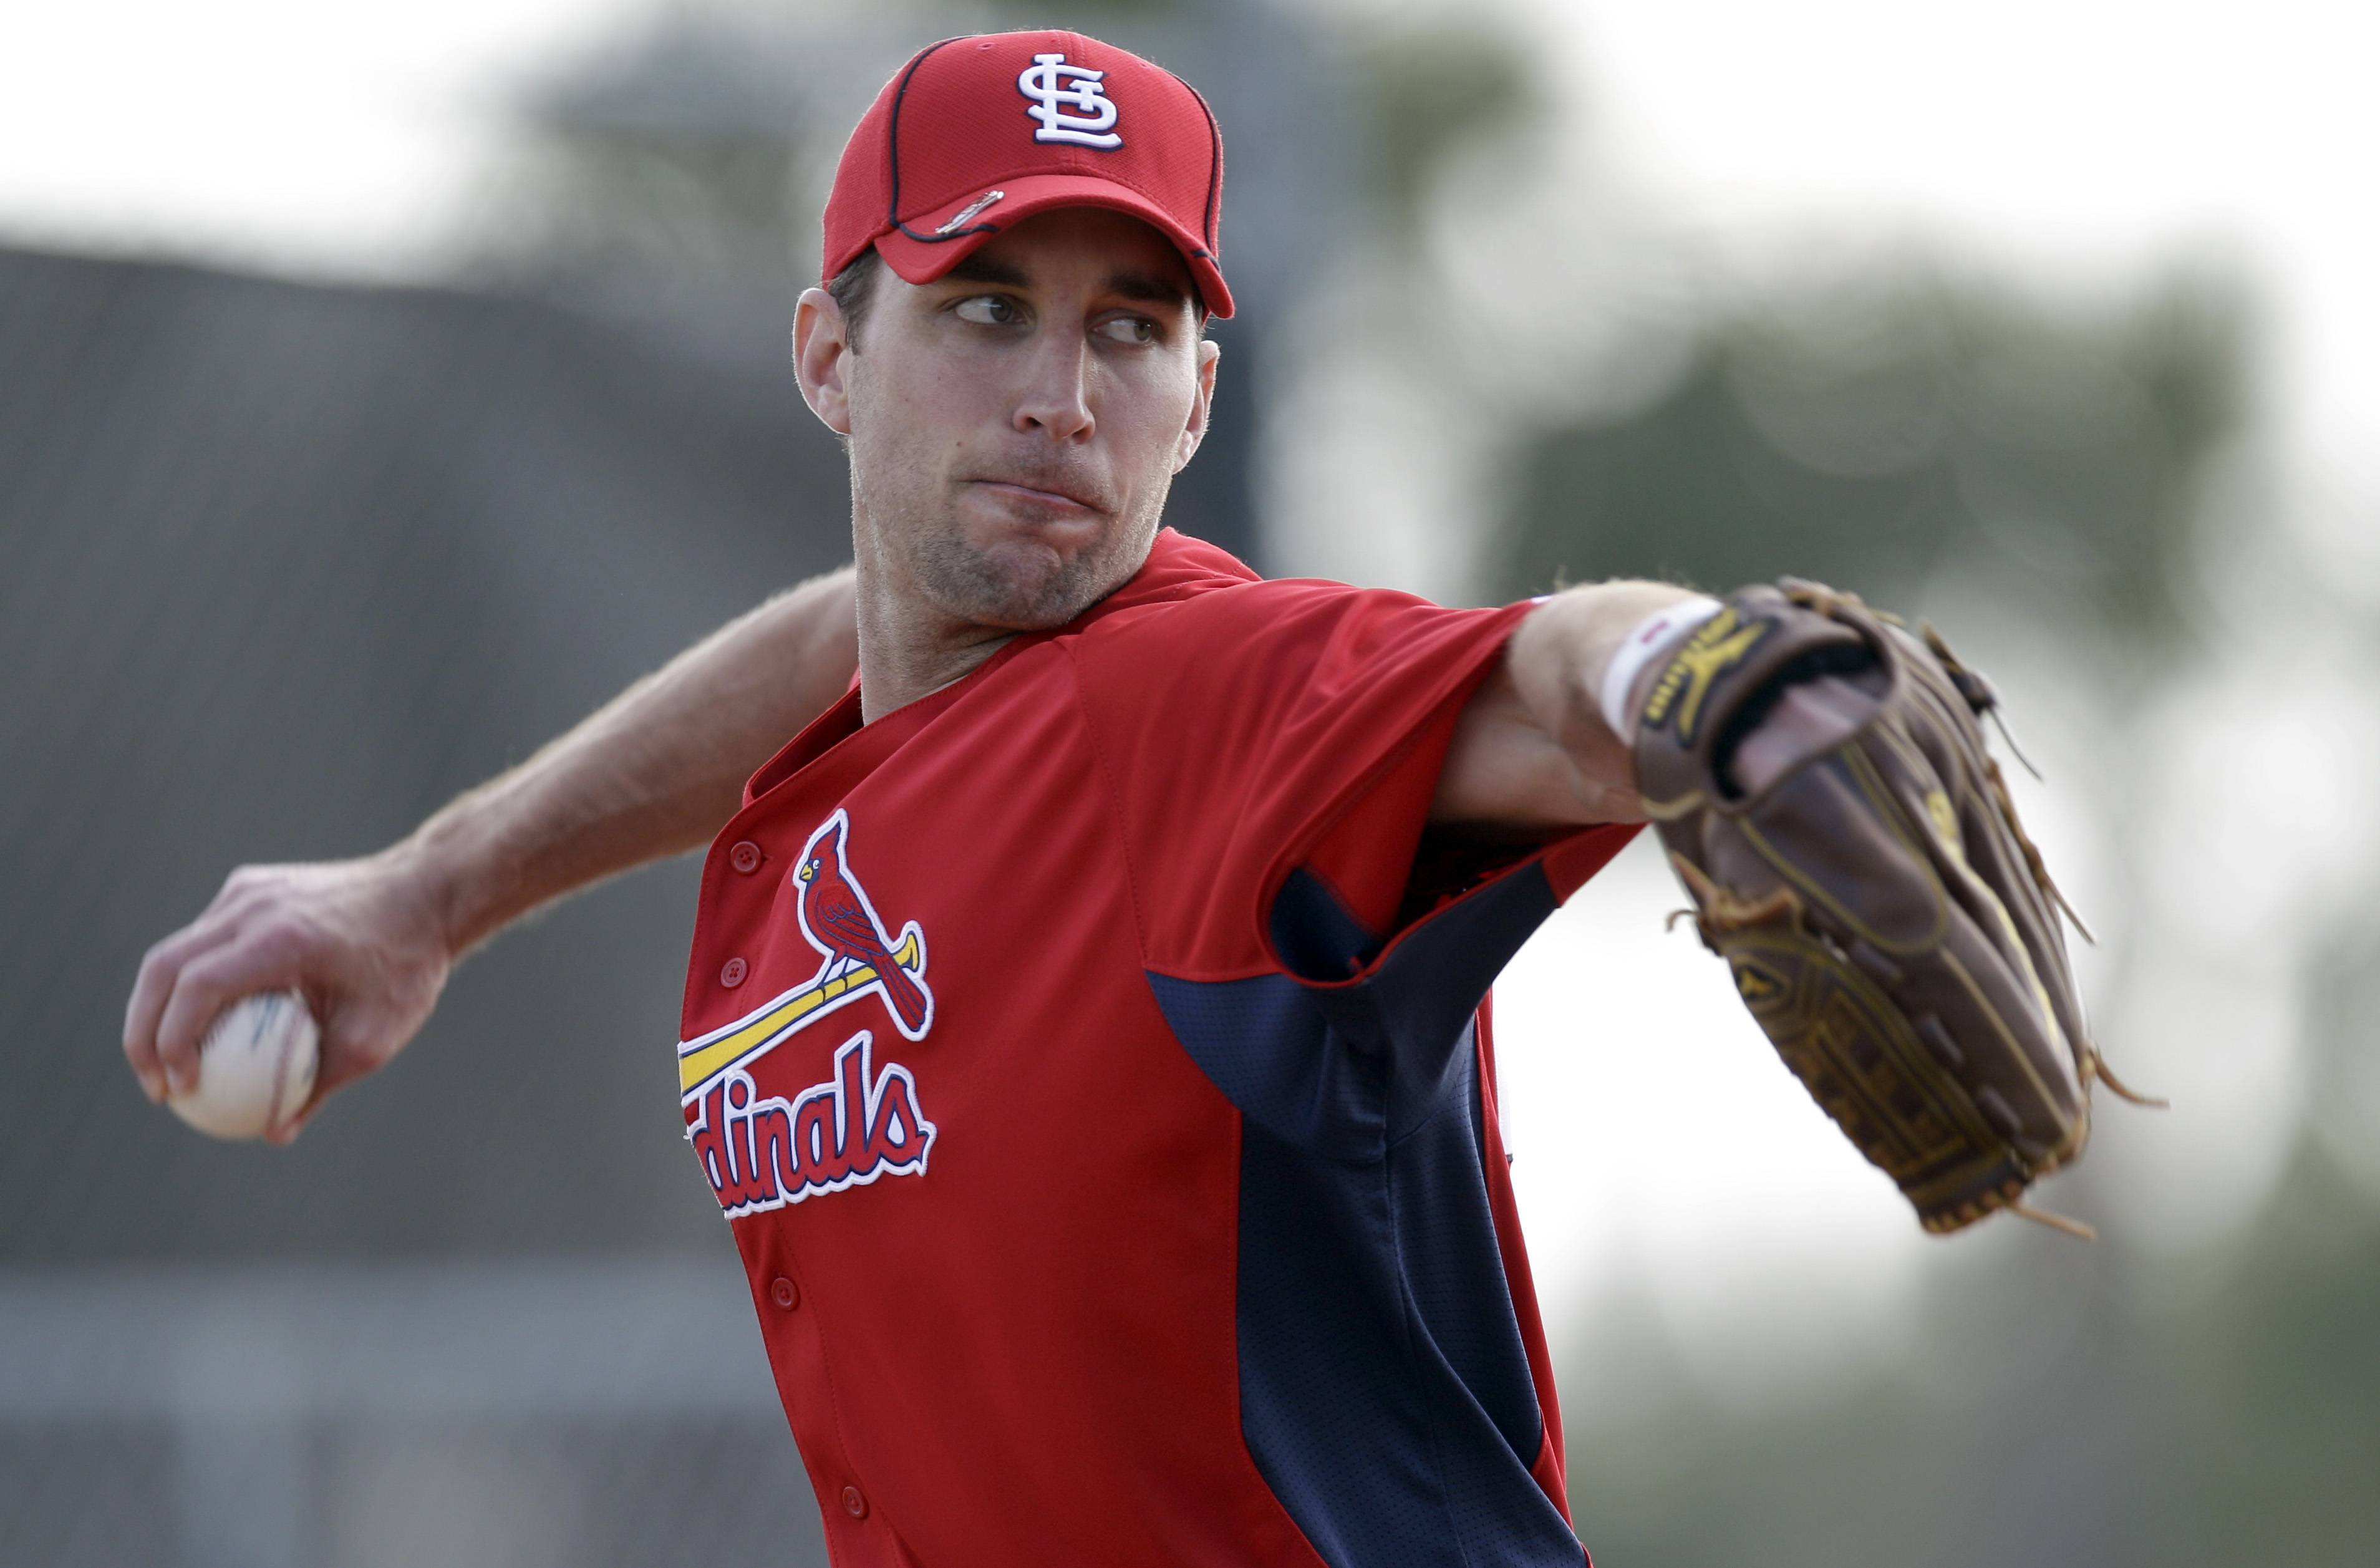 St. Louis Cardinals ace Adam Wainwright will have Tommy John surgery on his right elbow and miss the entire season.